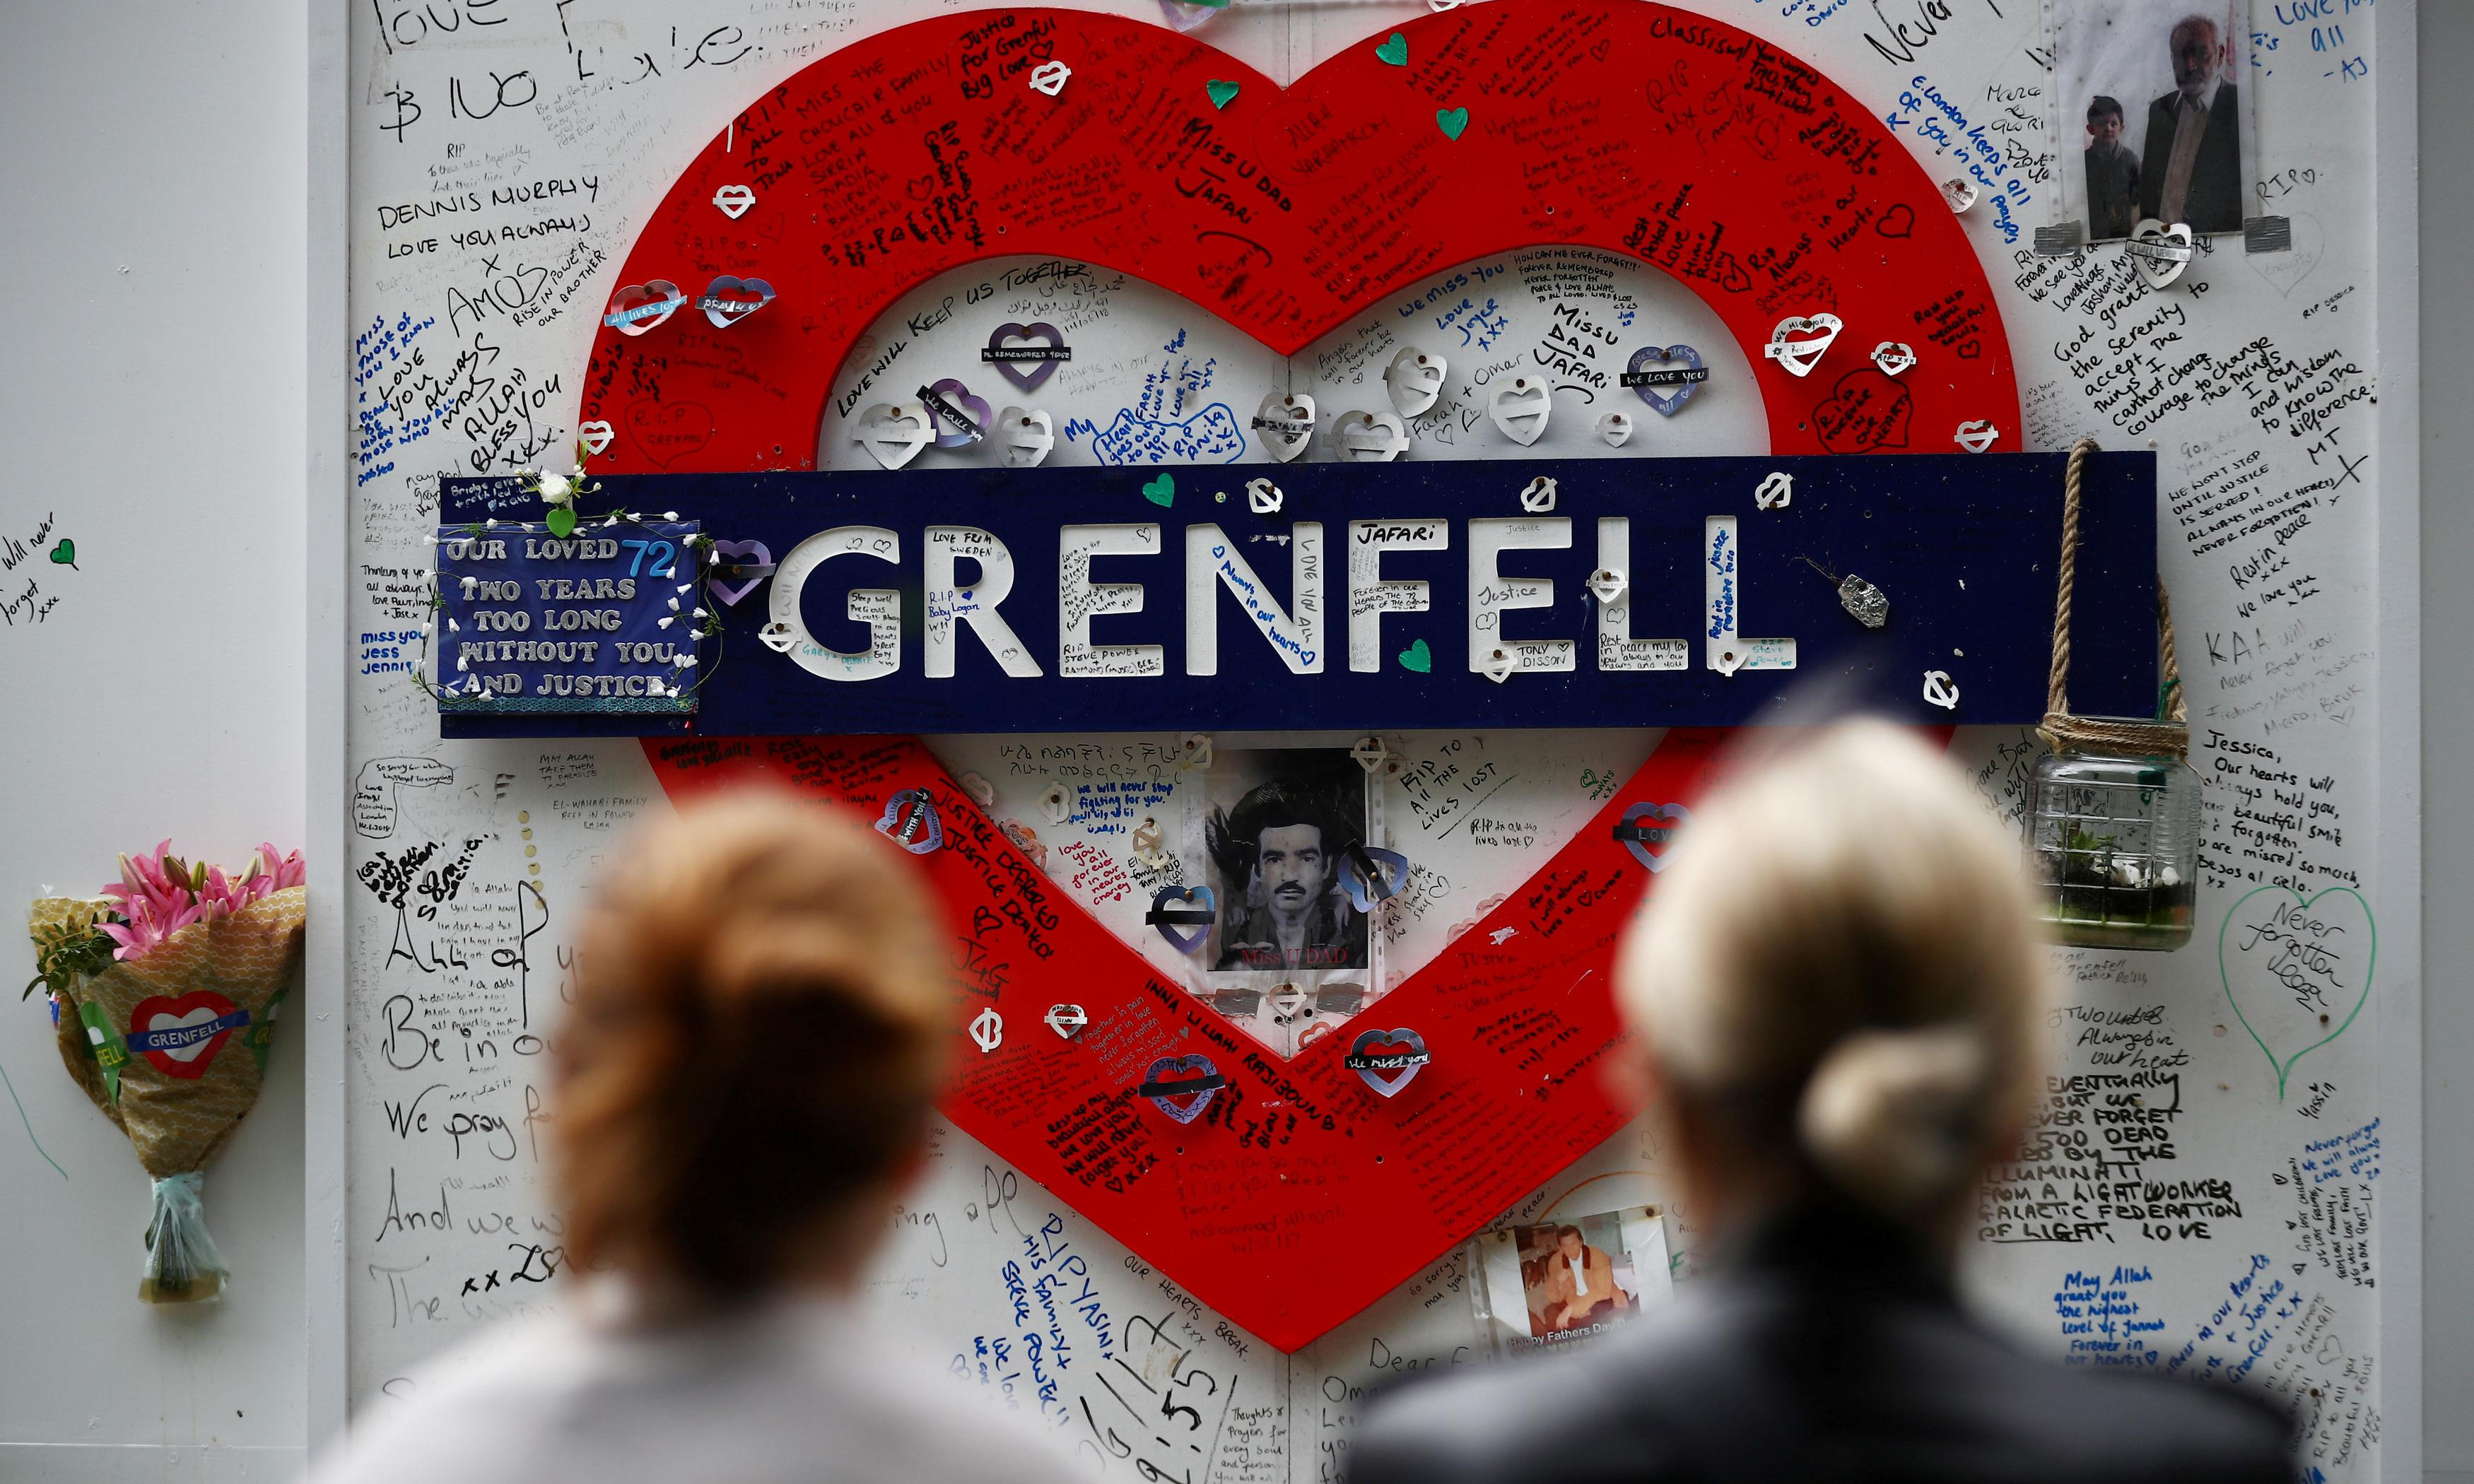 Grenfell survivors housed in flats with high fire risk, report finds